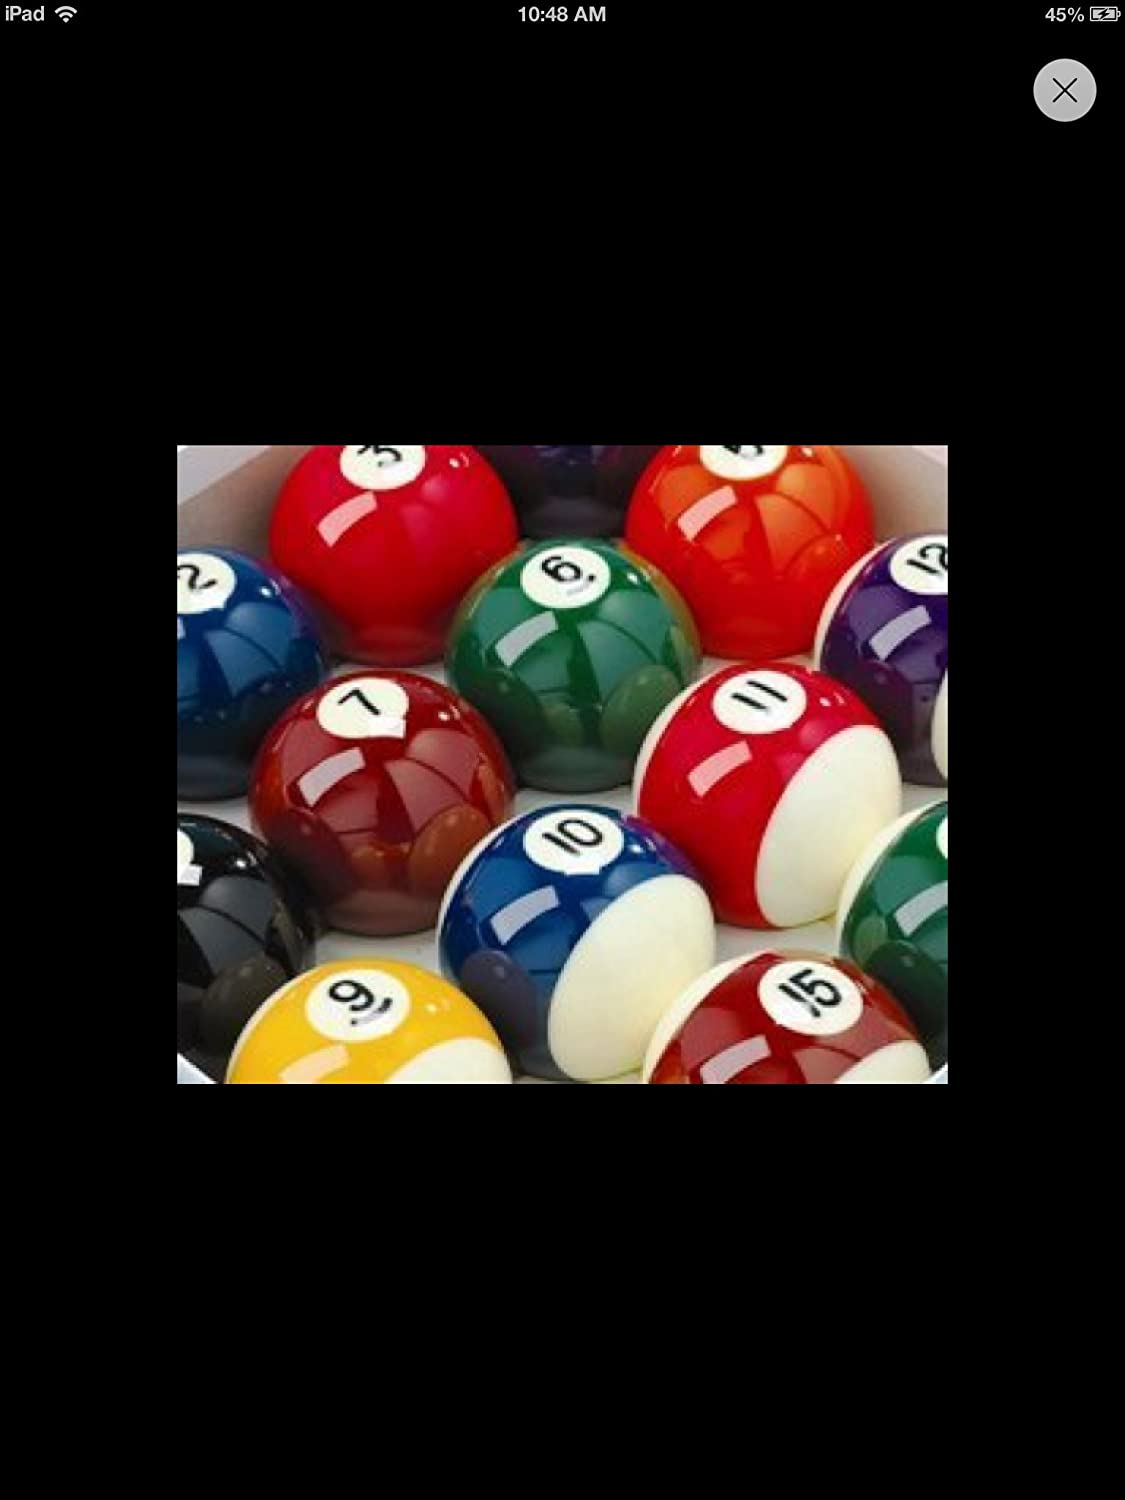 table fbx bill obj sports max equipment billiard models unitypackage mtl model balls cgtrader pool